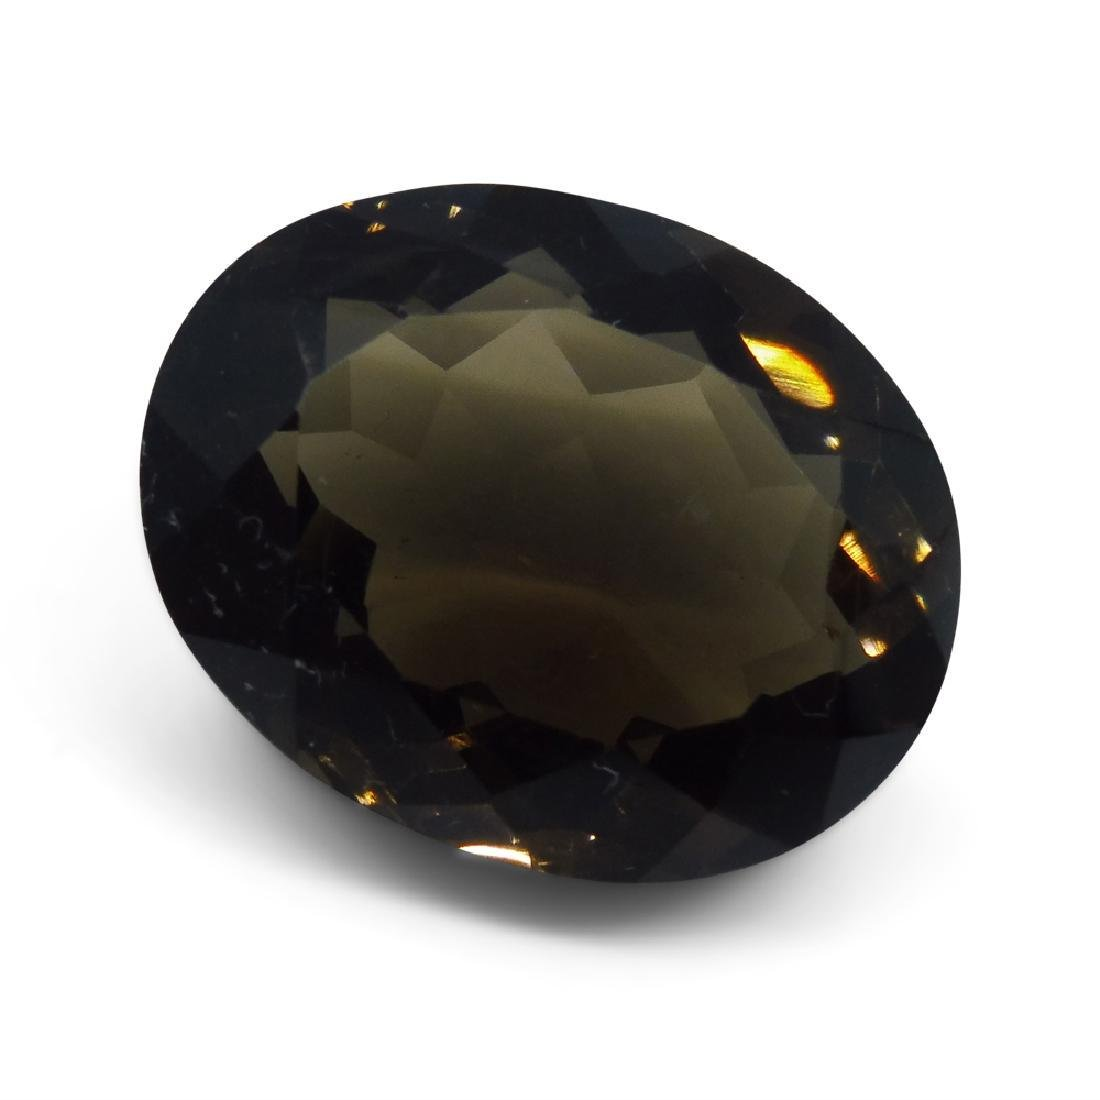 24.73 ct Oval Smokey Quartz